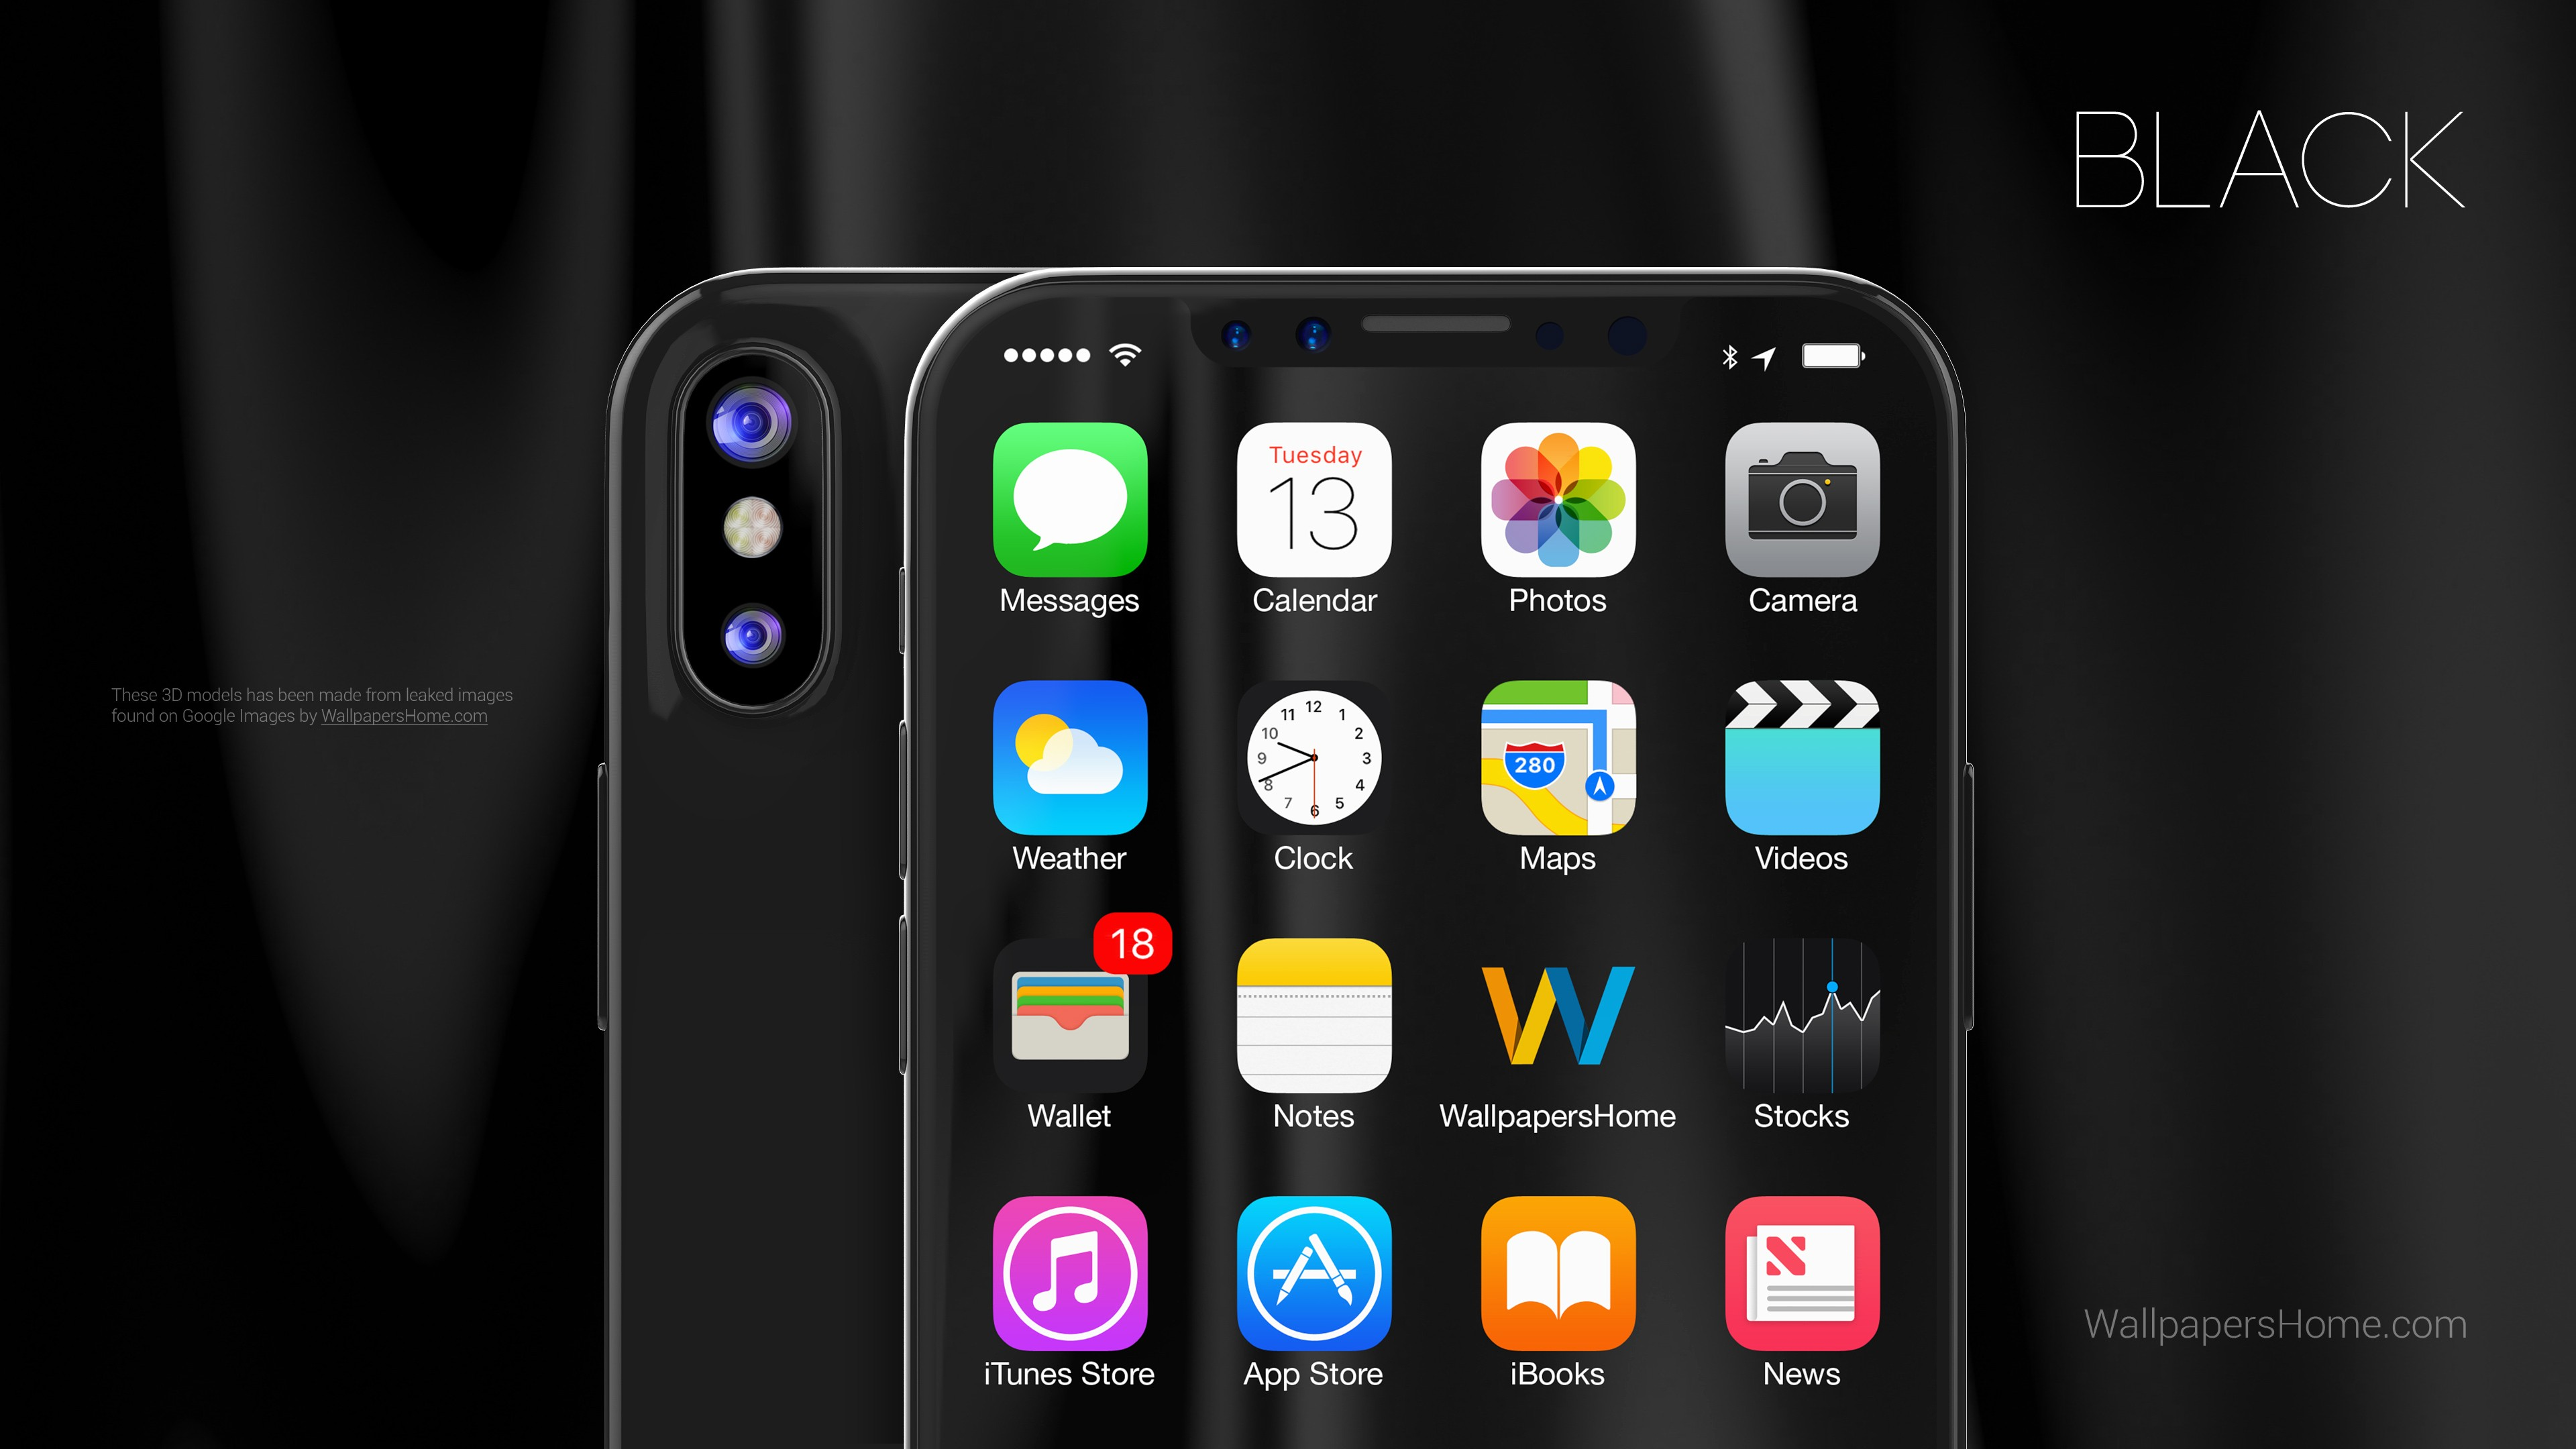 Awesome Phone Wallpapers Quotes Wallpaper Iphone X Black 3d Leaked Wwdc 2017 4k Hi